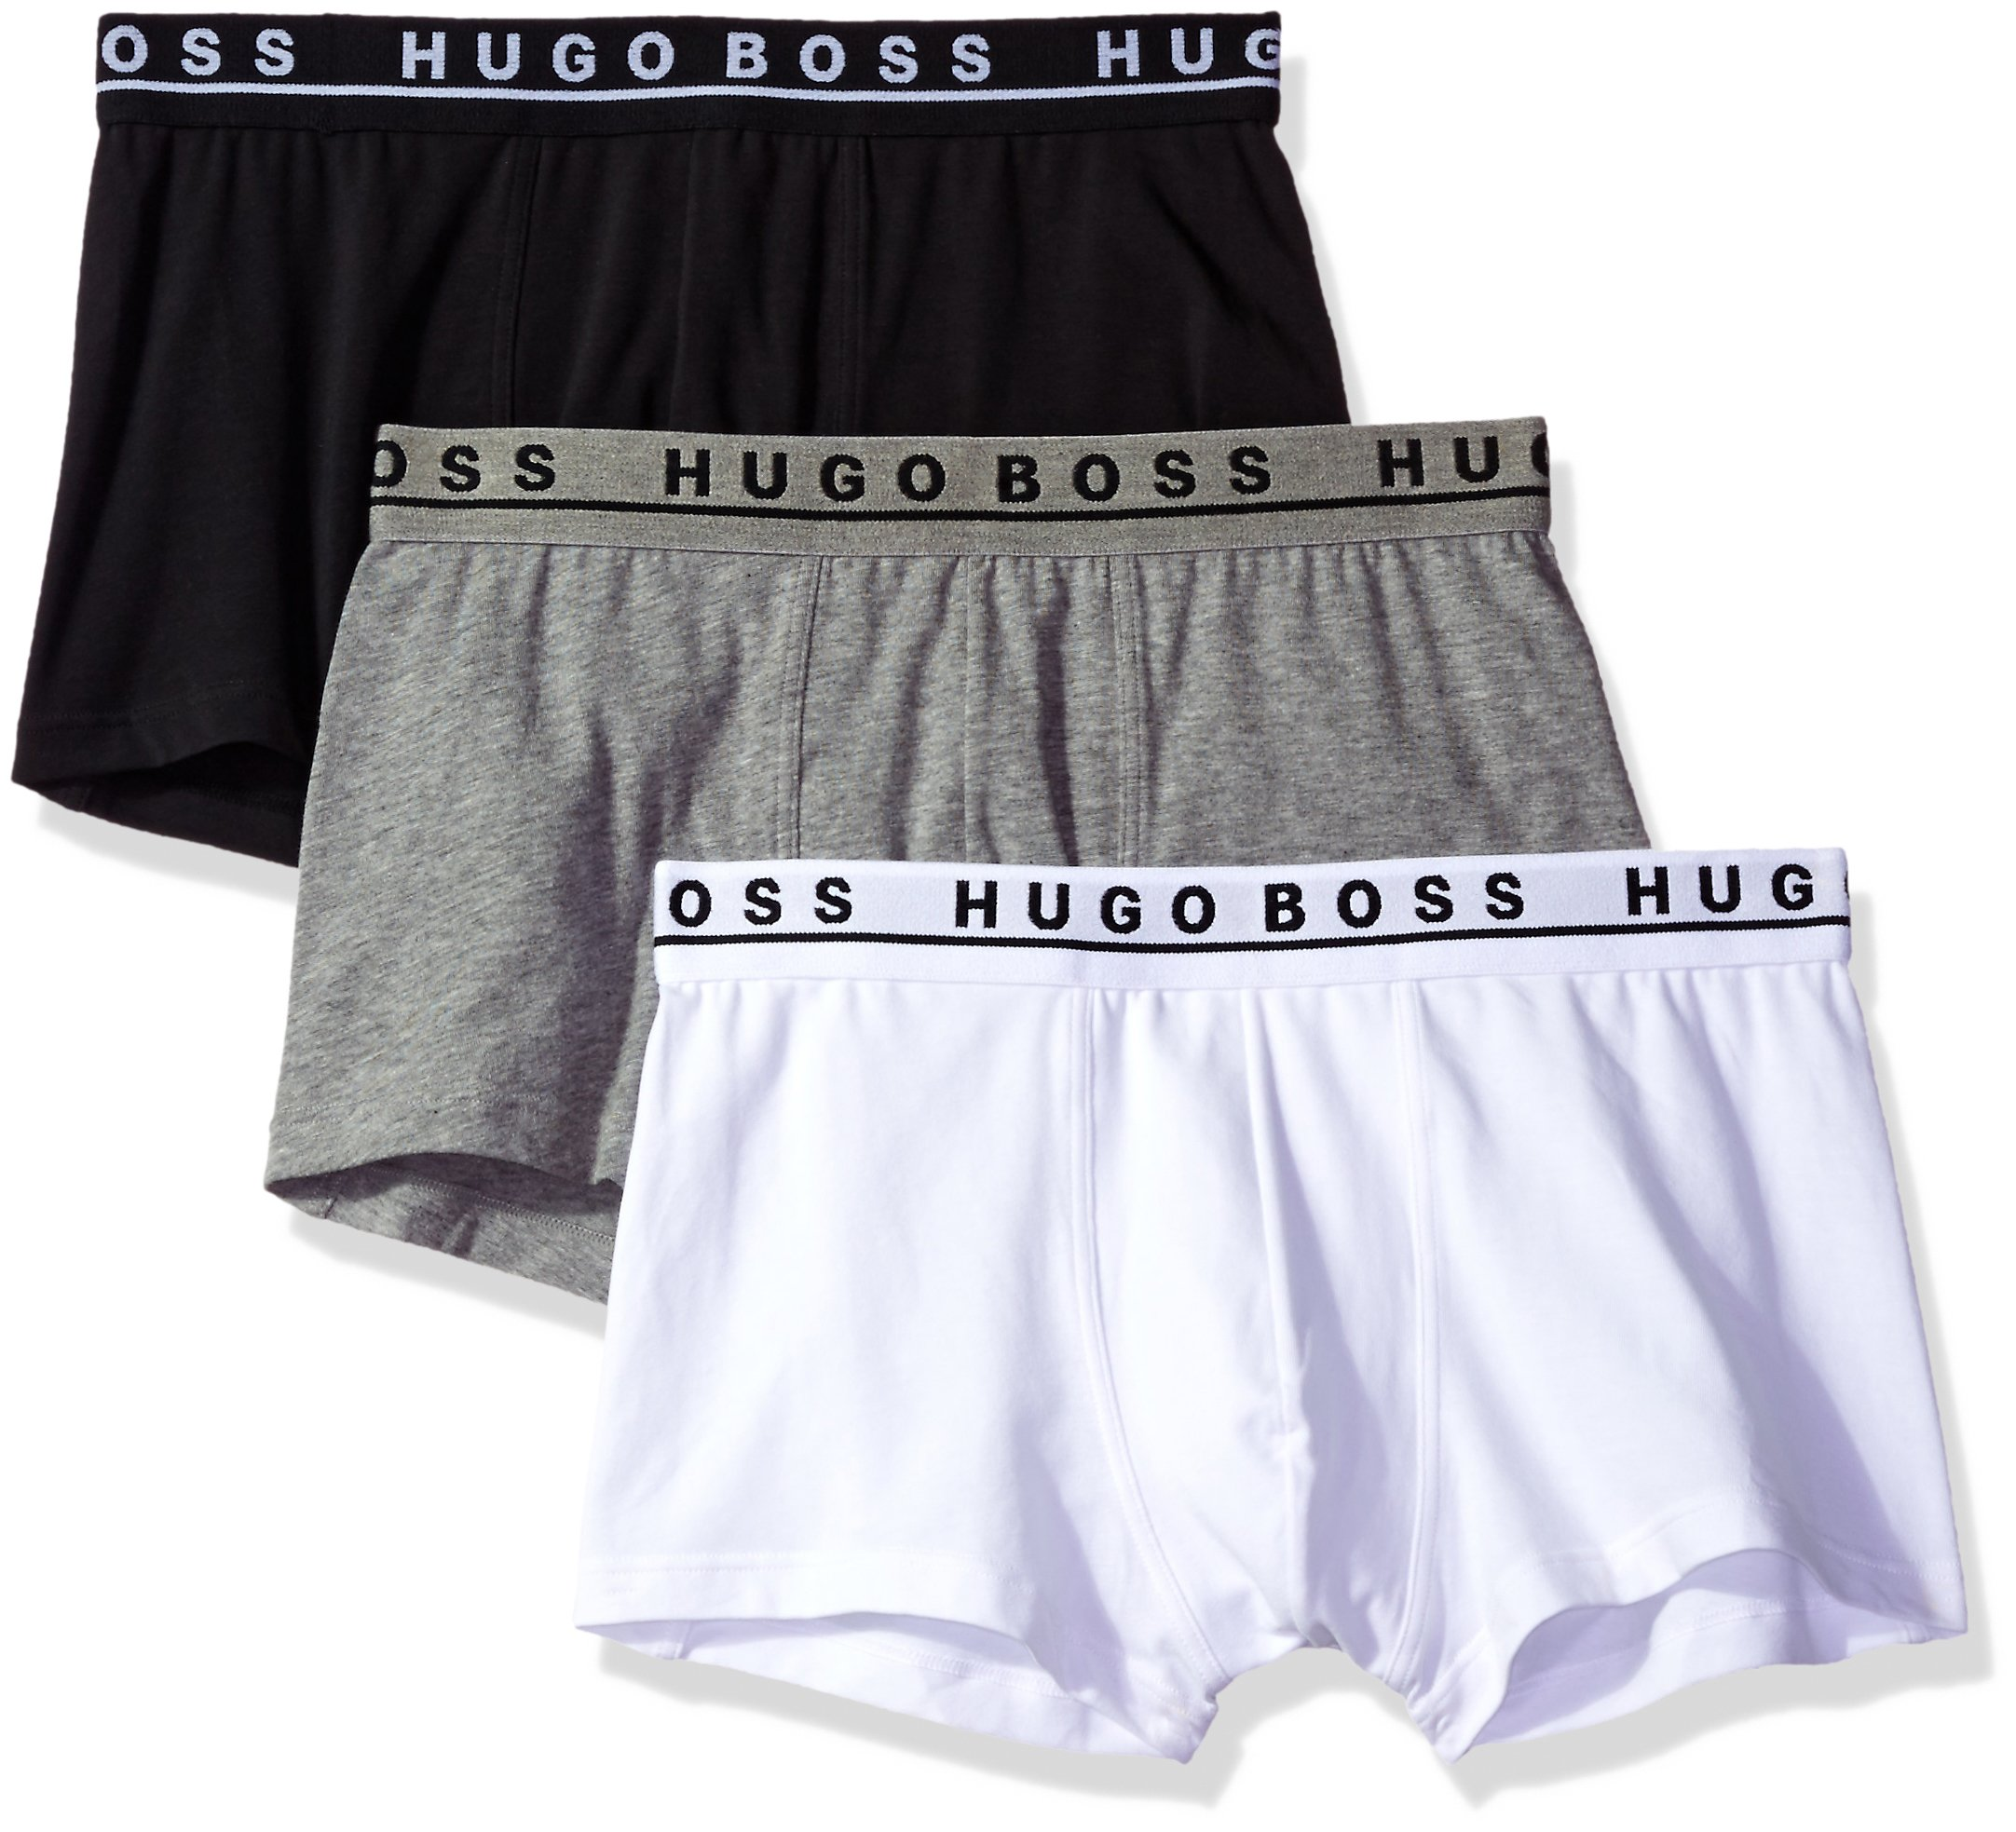 Hugo Boss BOSS Men's Trunk 3p Co/El 10146061 01, Black/Grey/White, Large